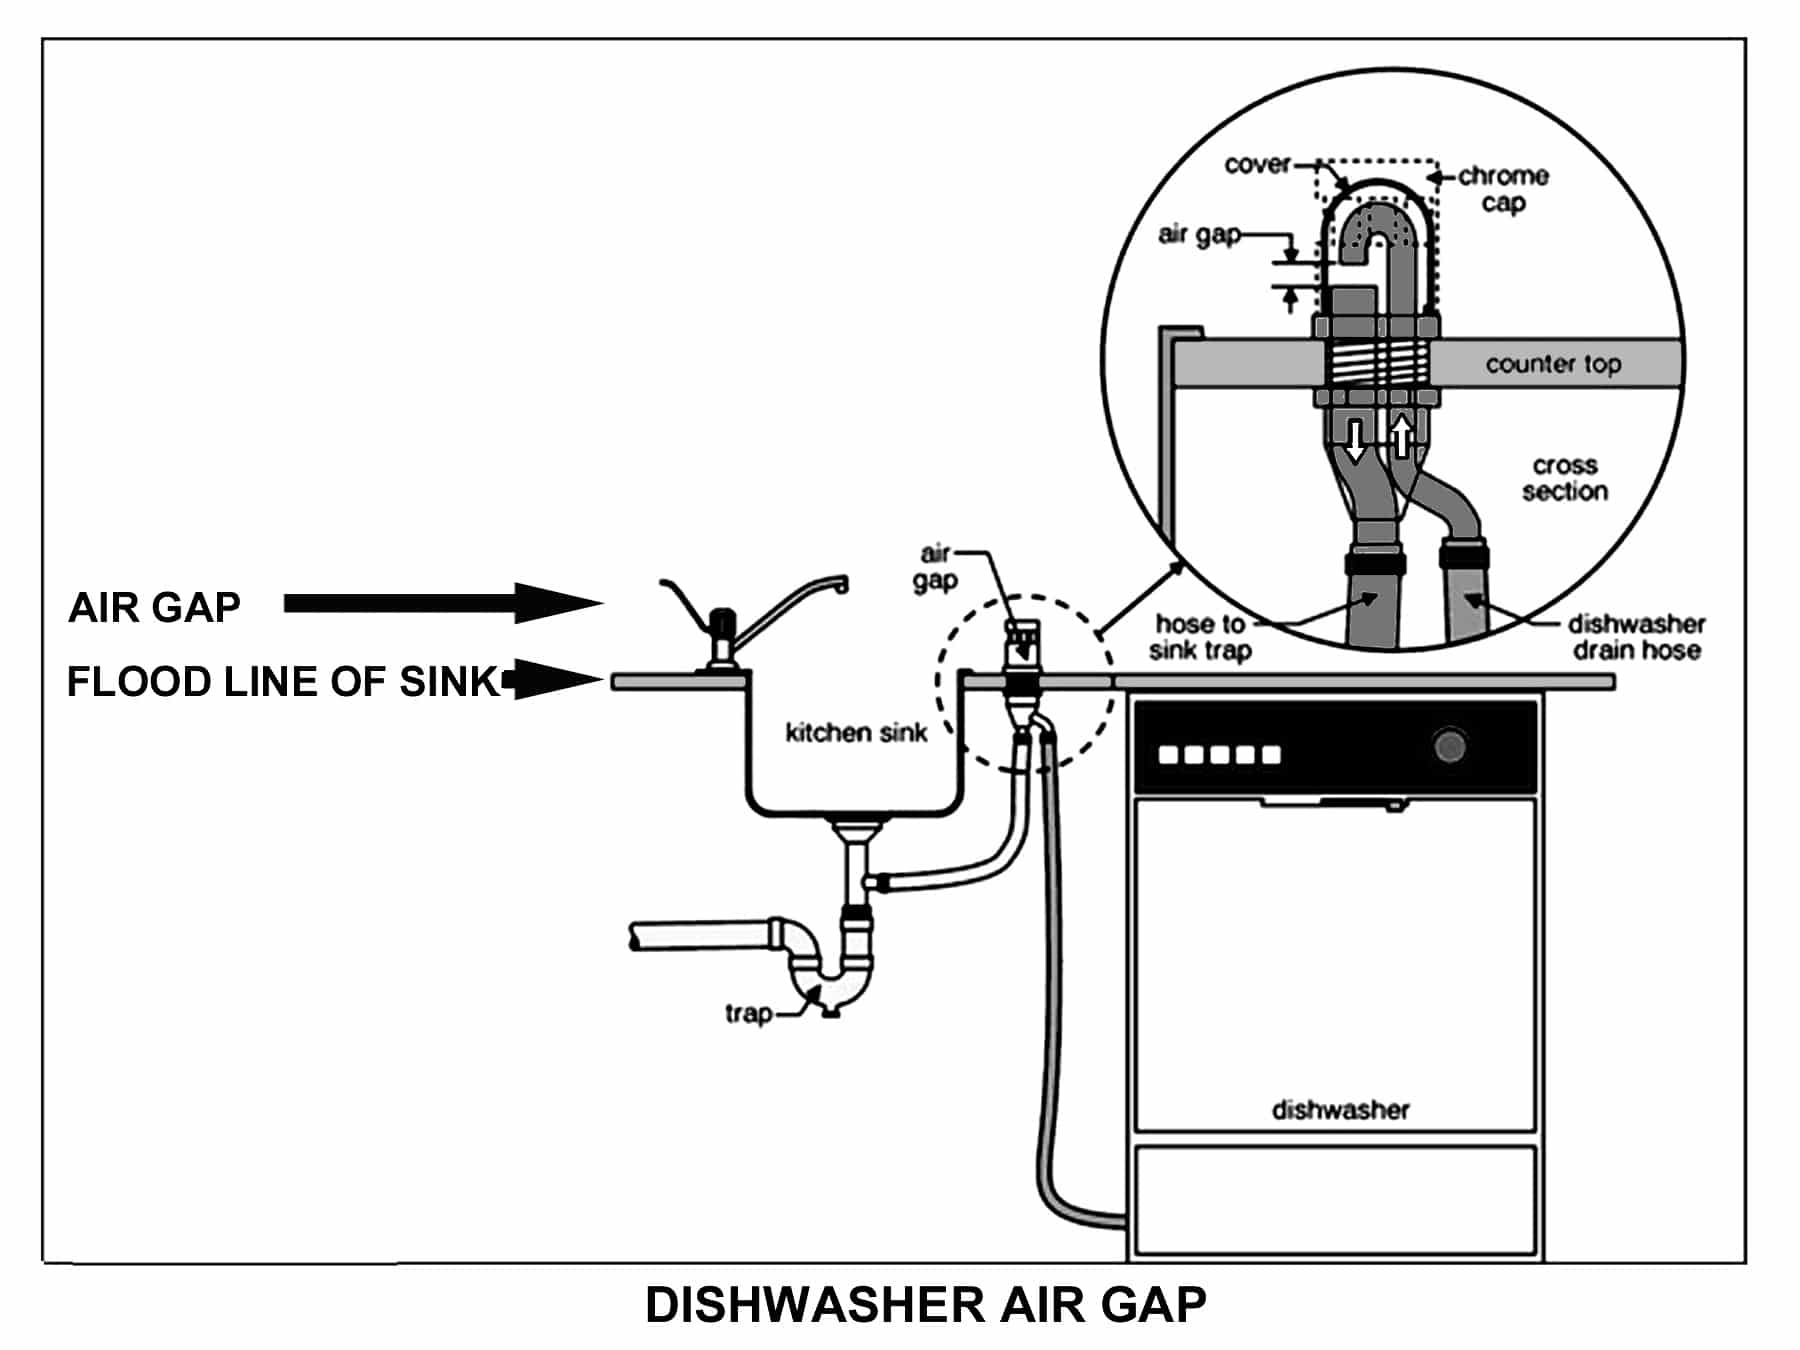 hight resolution of  a plumber uses a small cylindrical device mounted on the countertop parallel with a faucet inside the device there are two tubes separated by an empty